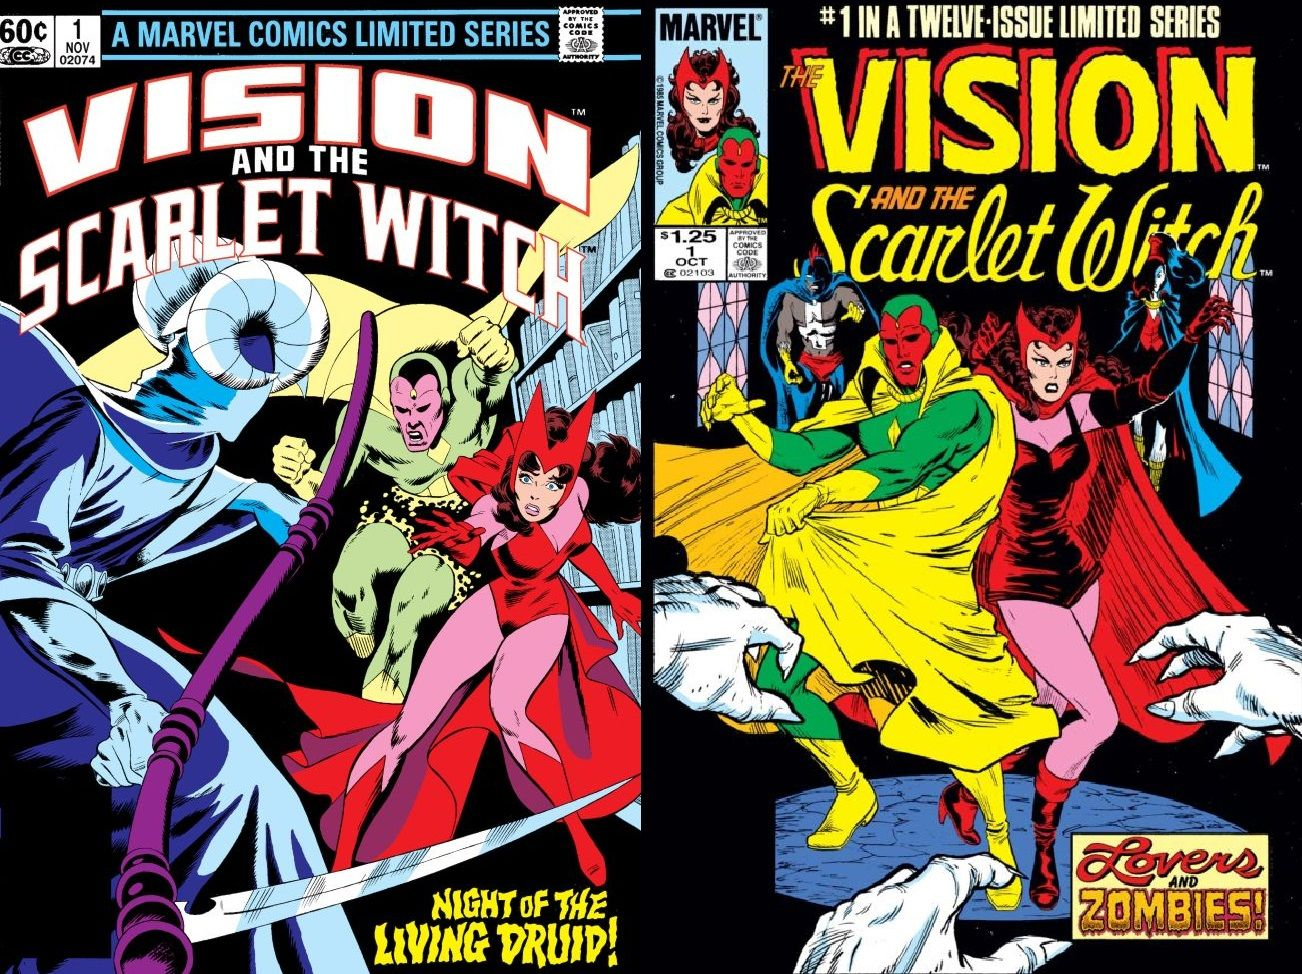 Scarlet Witch and Vision starred together in two limited series.